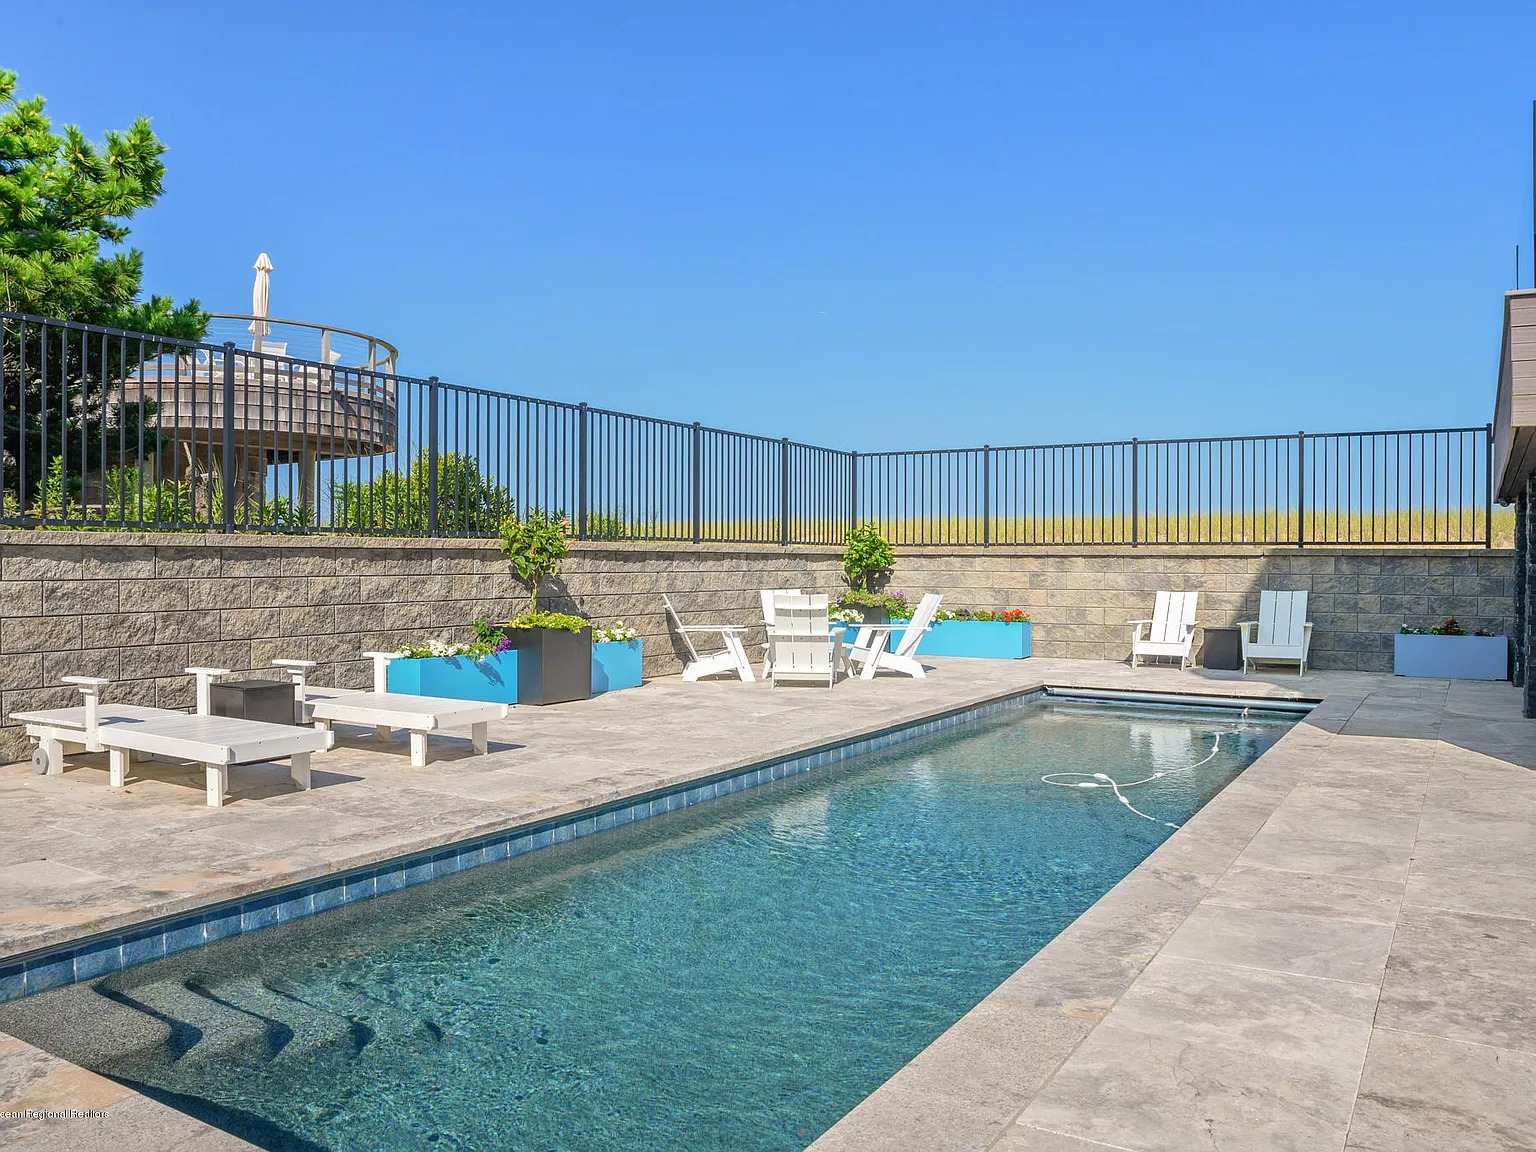 109-F Long Beach Blvd, Long Beach Township, NJ 08008 - $5,499,999 home for sale, house images, photos and pics gallery